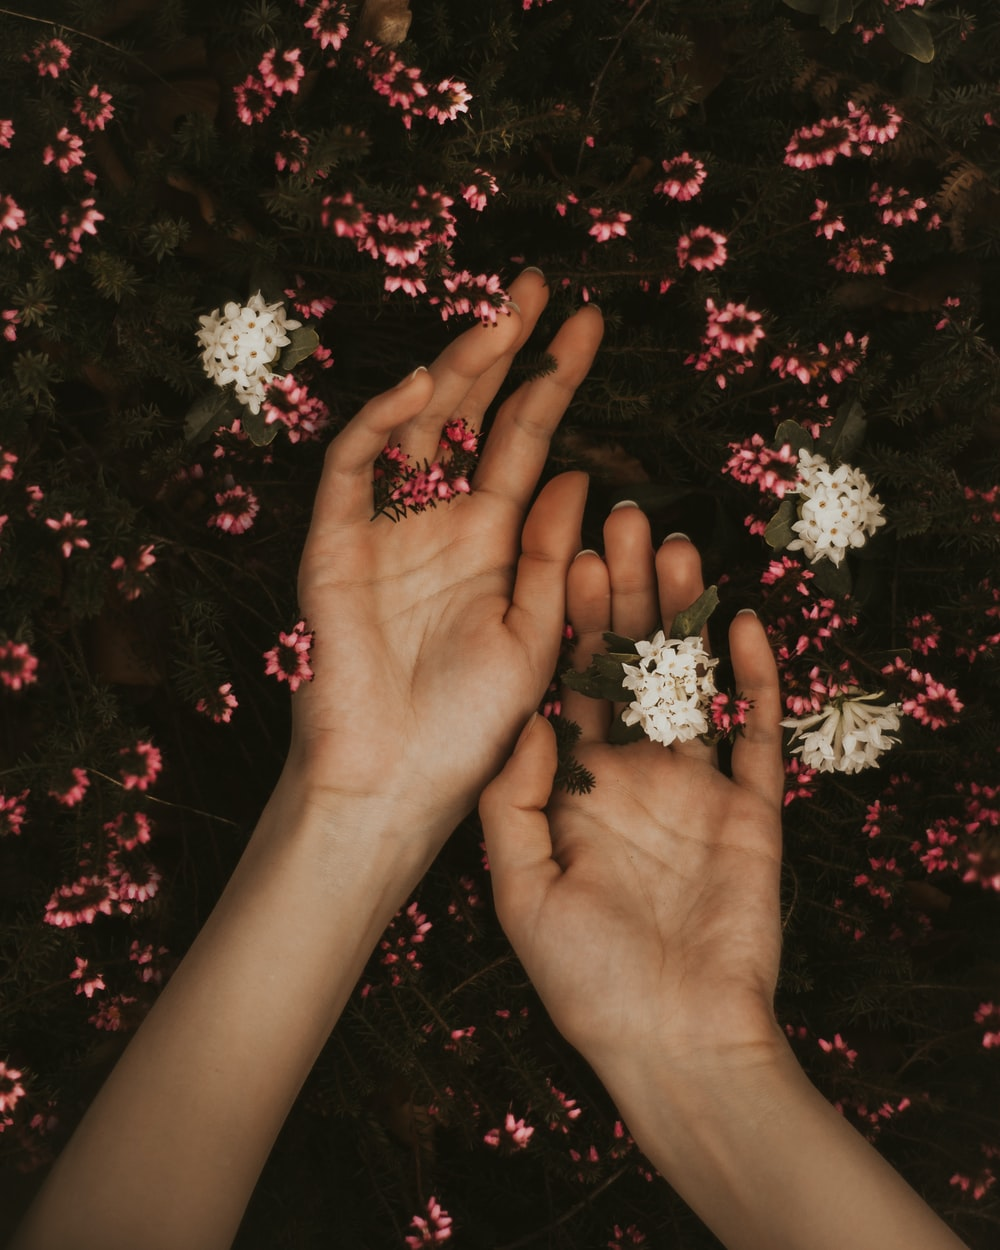 person holding white and pink flowers